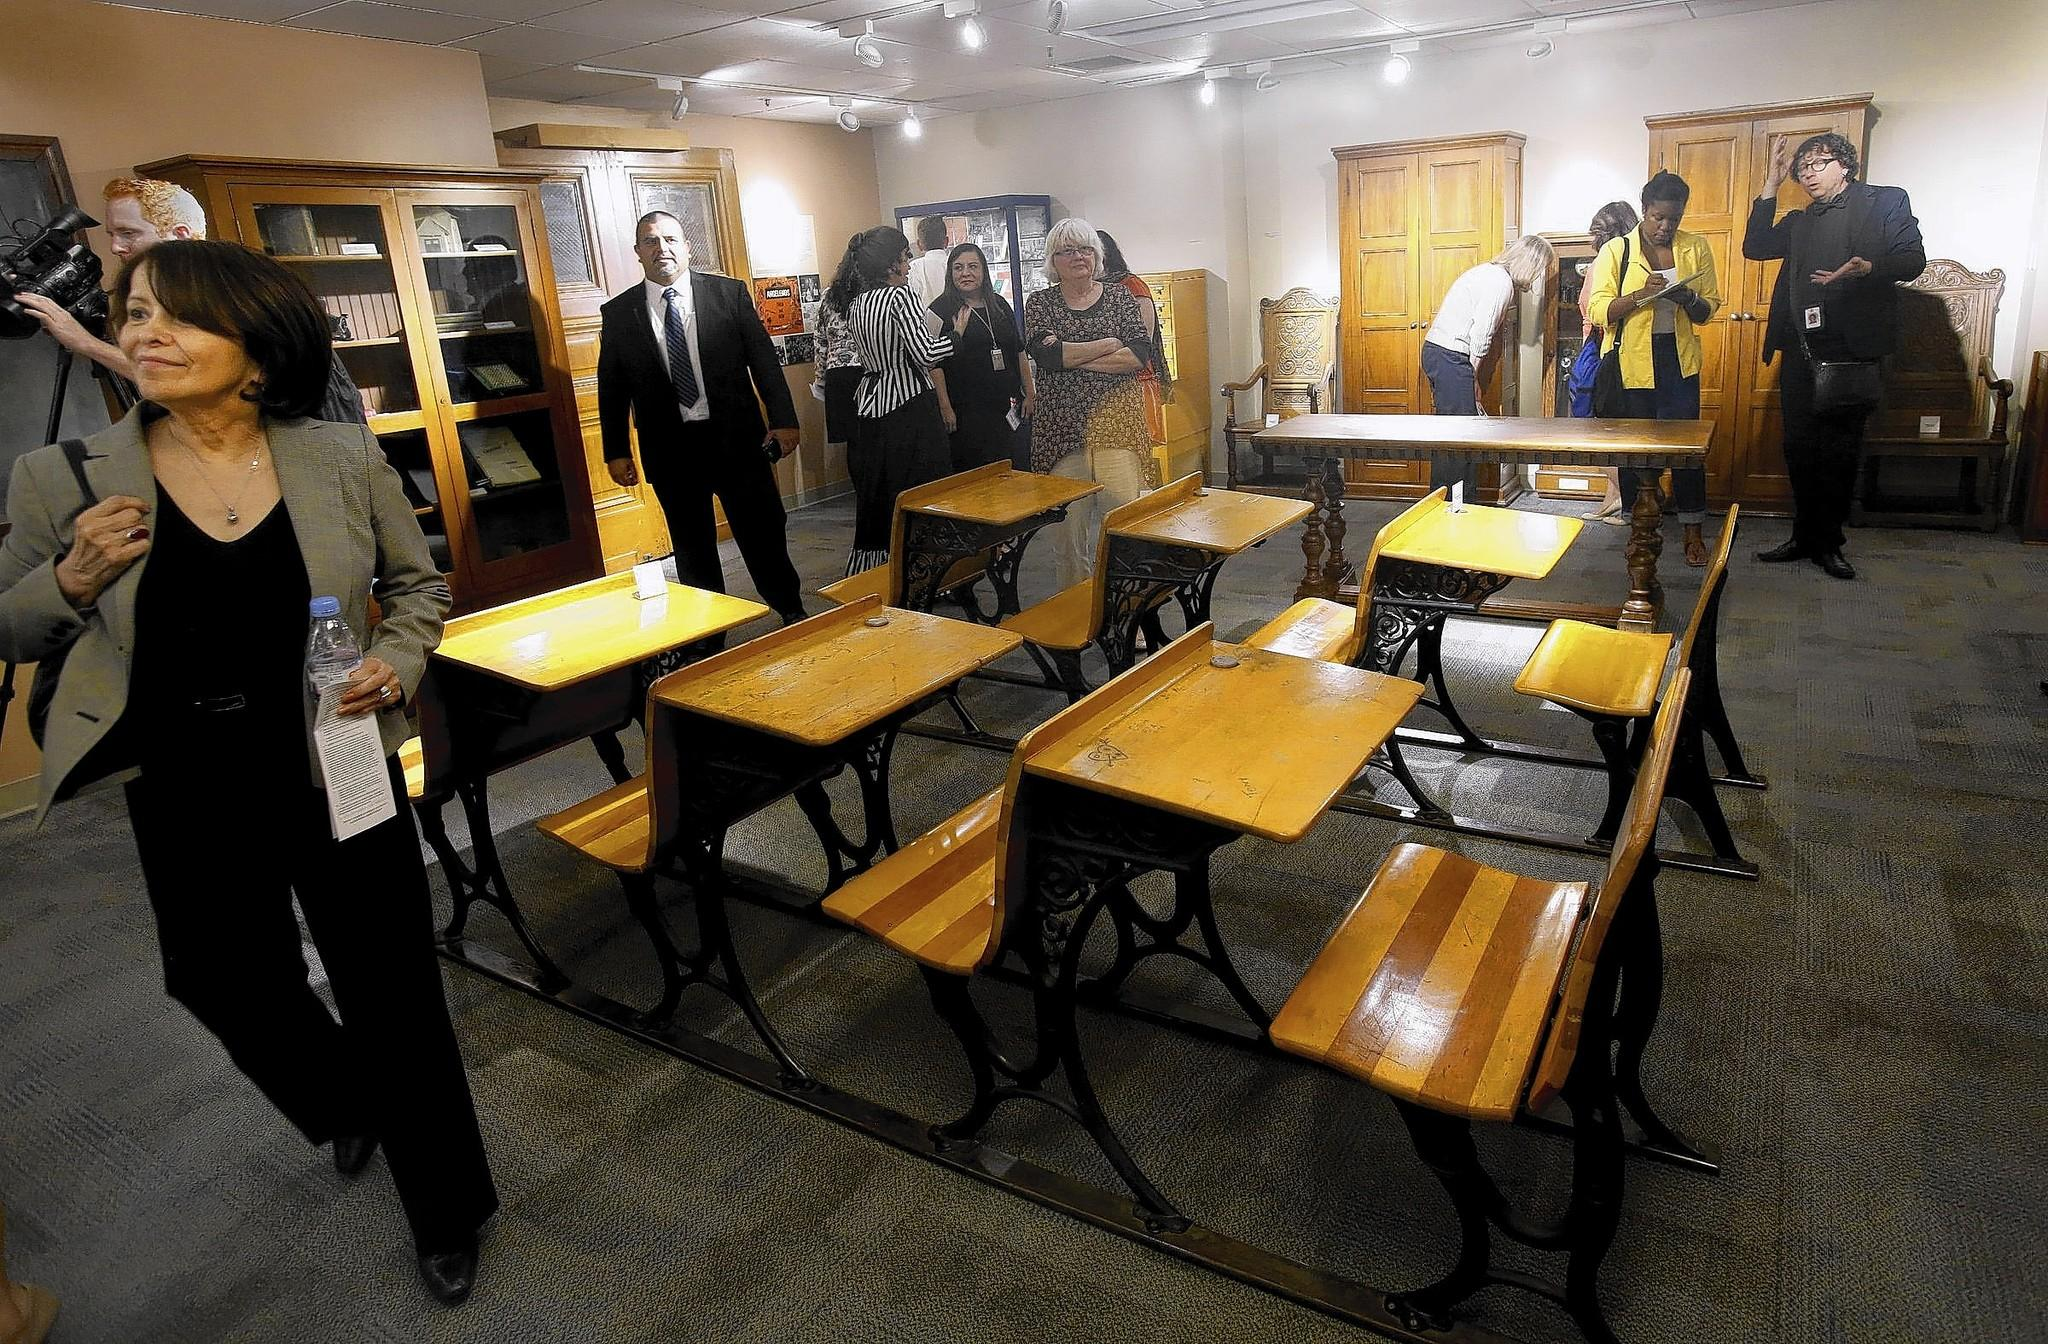 Visitors check out L.A. Unified's Heritage House exhibit at district headquarters downtown. The desks are from early era of the district.